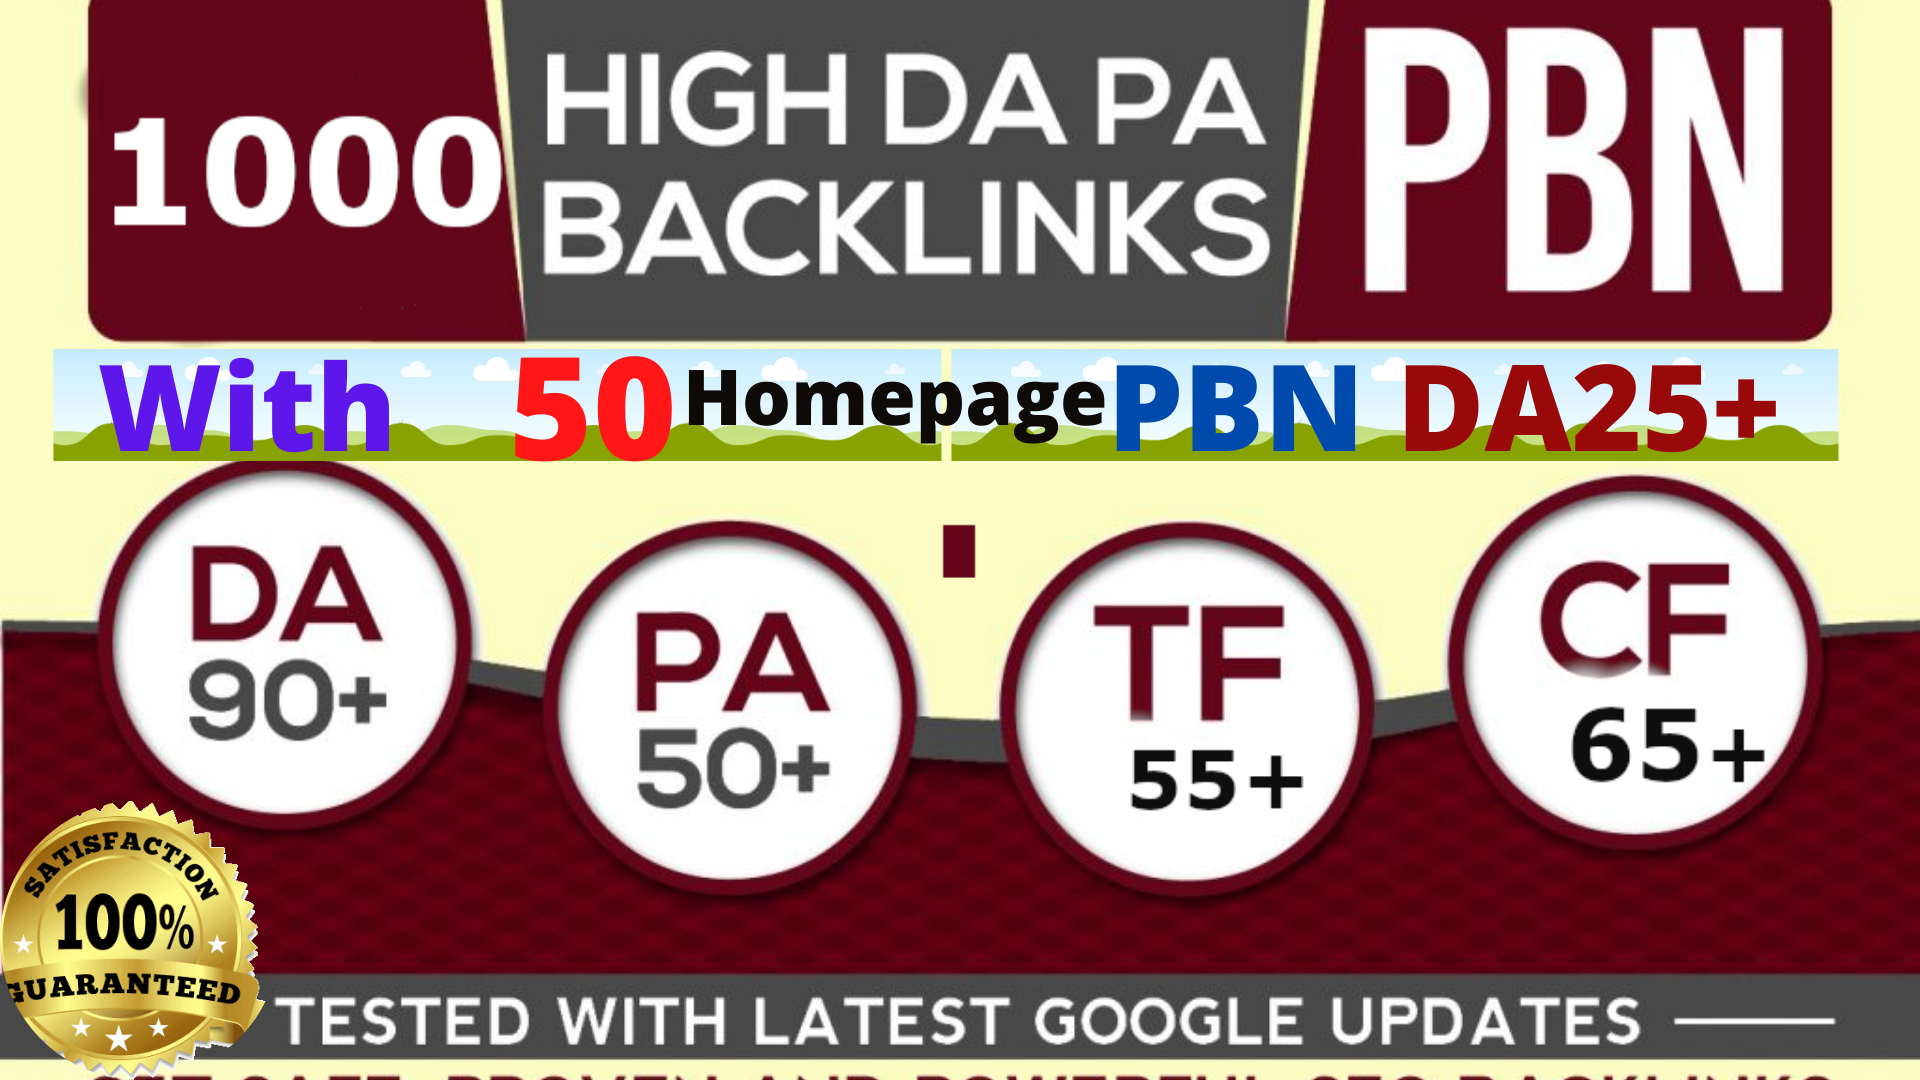 Manually done Powerful 1000+DA90 AND Homepage 50 PBN links with HIGH DA exclusive Backlink